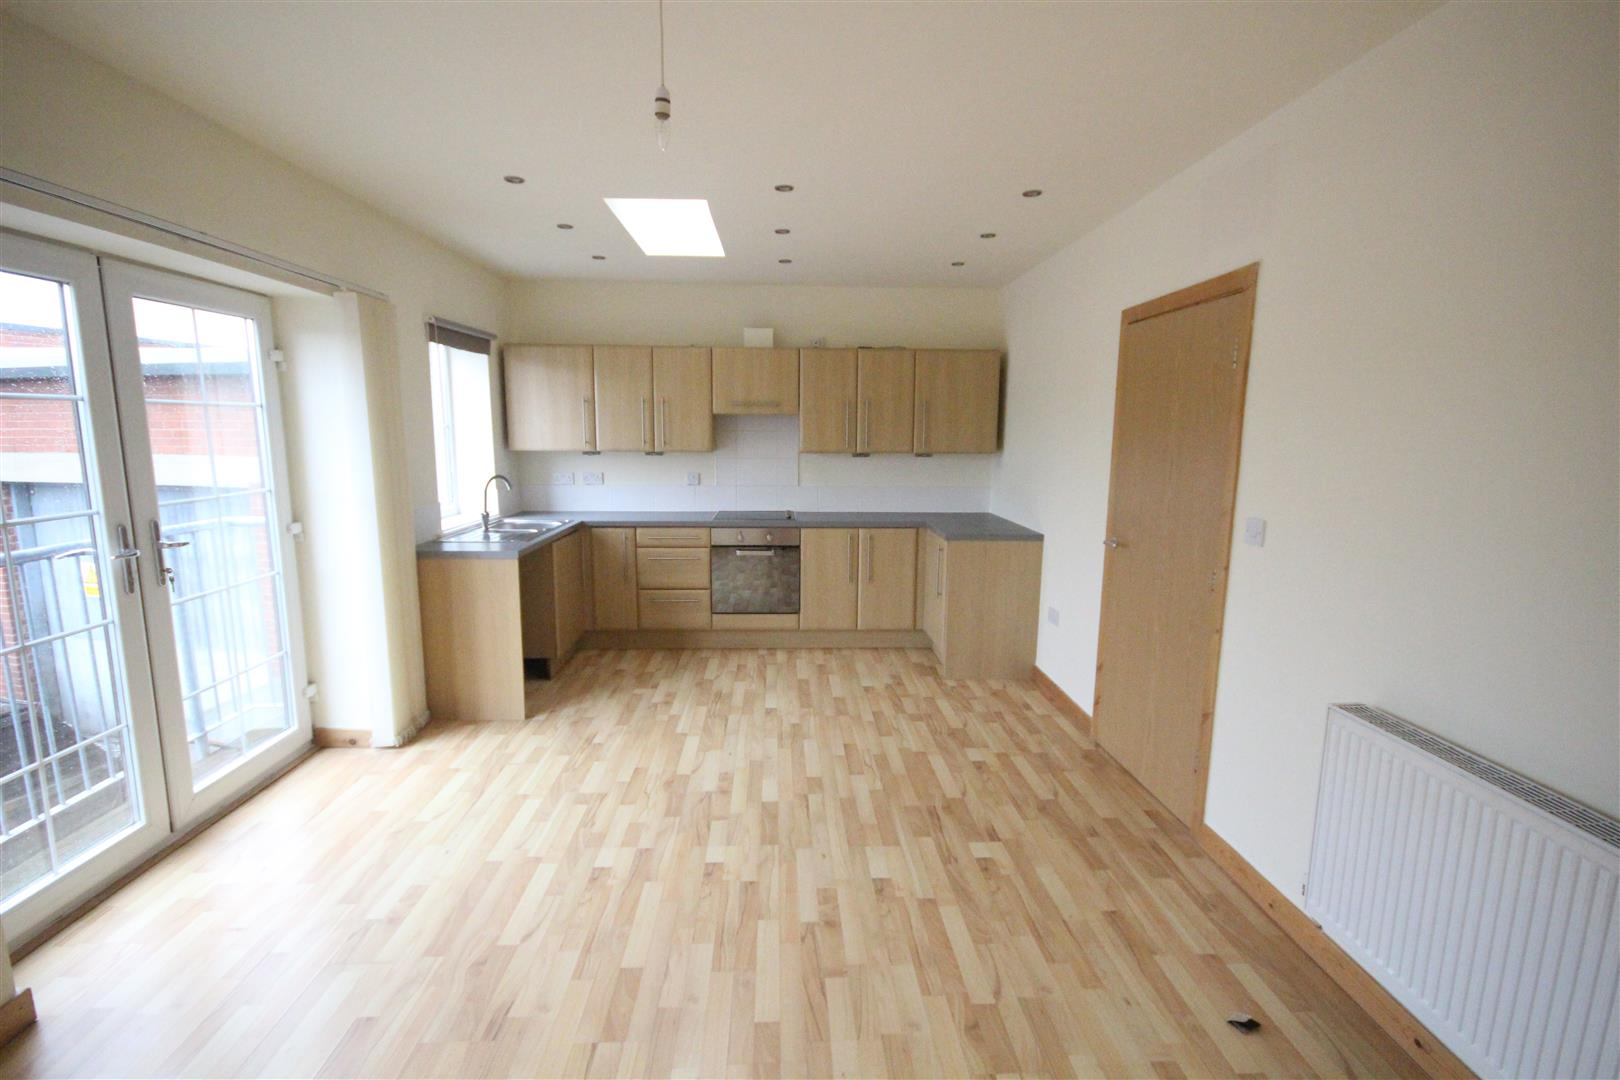 2 bedroom bungalow For Sale in Colne - IMG_0805.JPG